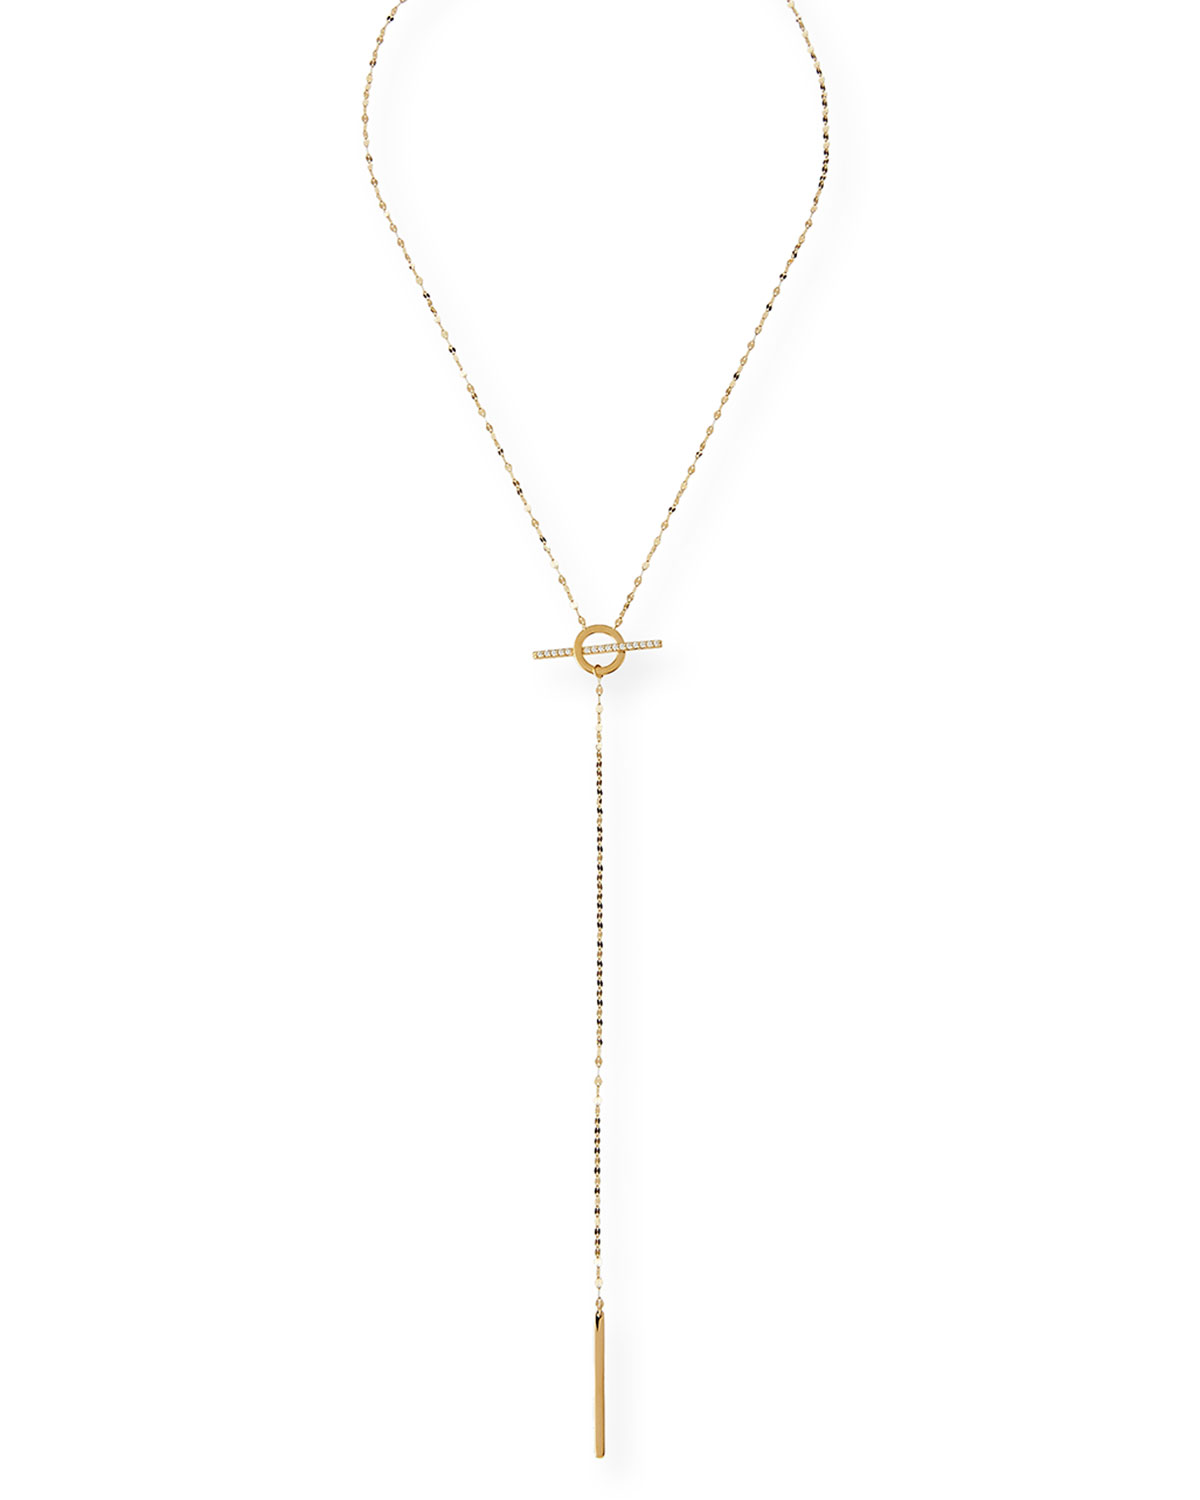 Lana Jewelry 14k Gold Chime Lariat Necklace, 17L